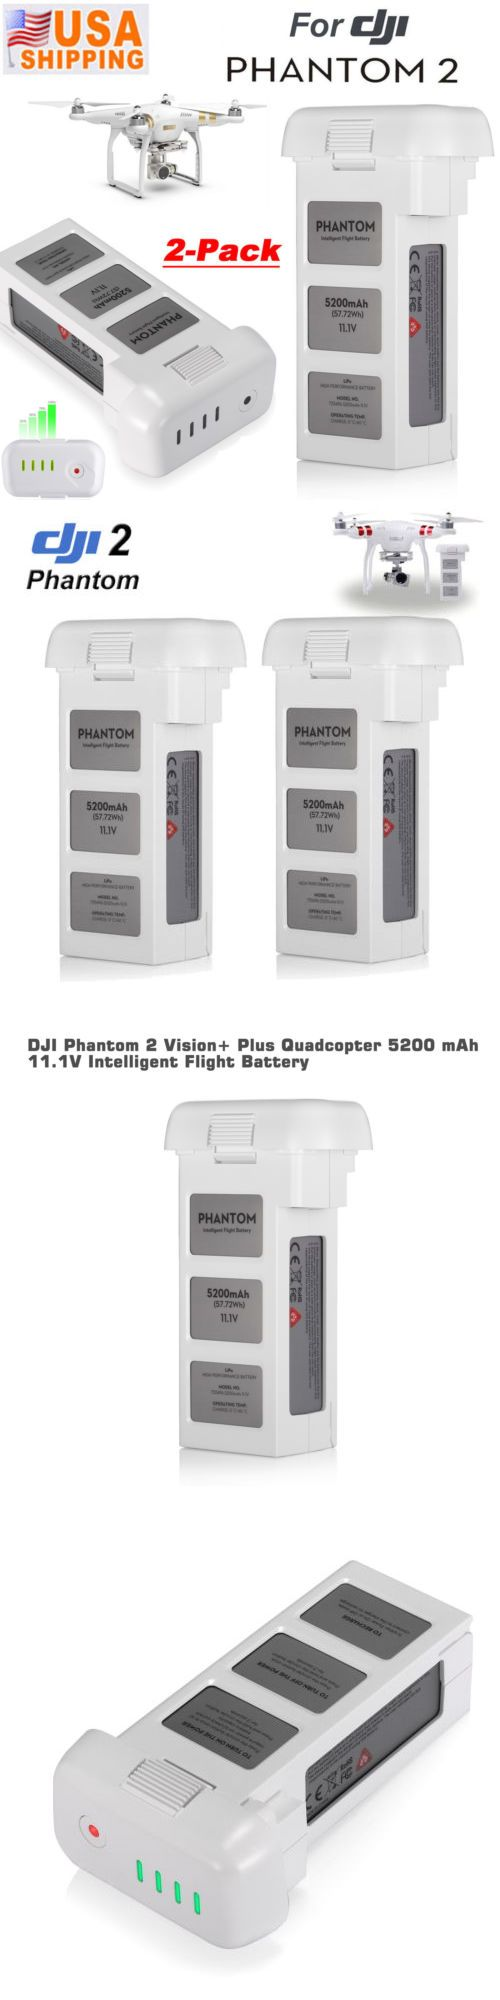 Other RC Parts and Accs 182213: 2 Pack 5200Mah 11.1V 3S Intelligent Lipo Battery For Dji Phantom 2 Vision + Plus -> BUY IT NOW ONLY: $89.99 on eBay!